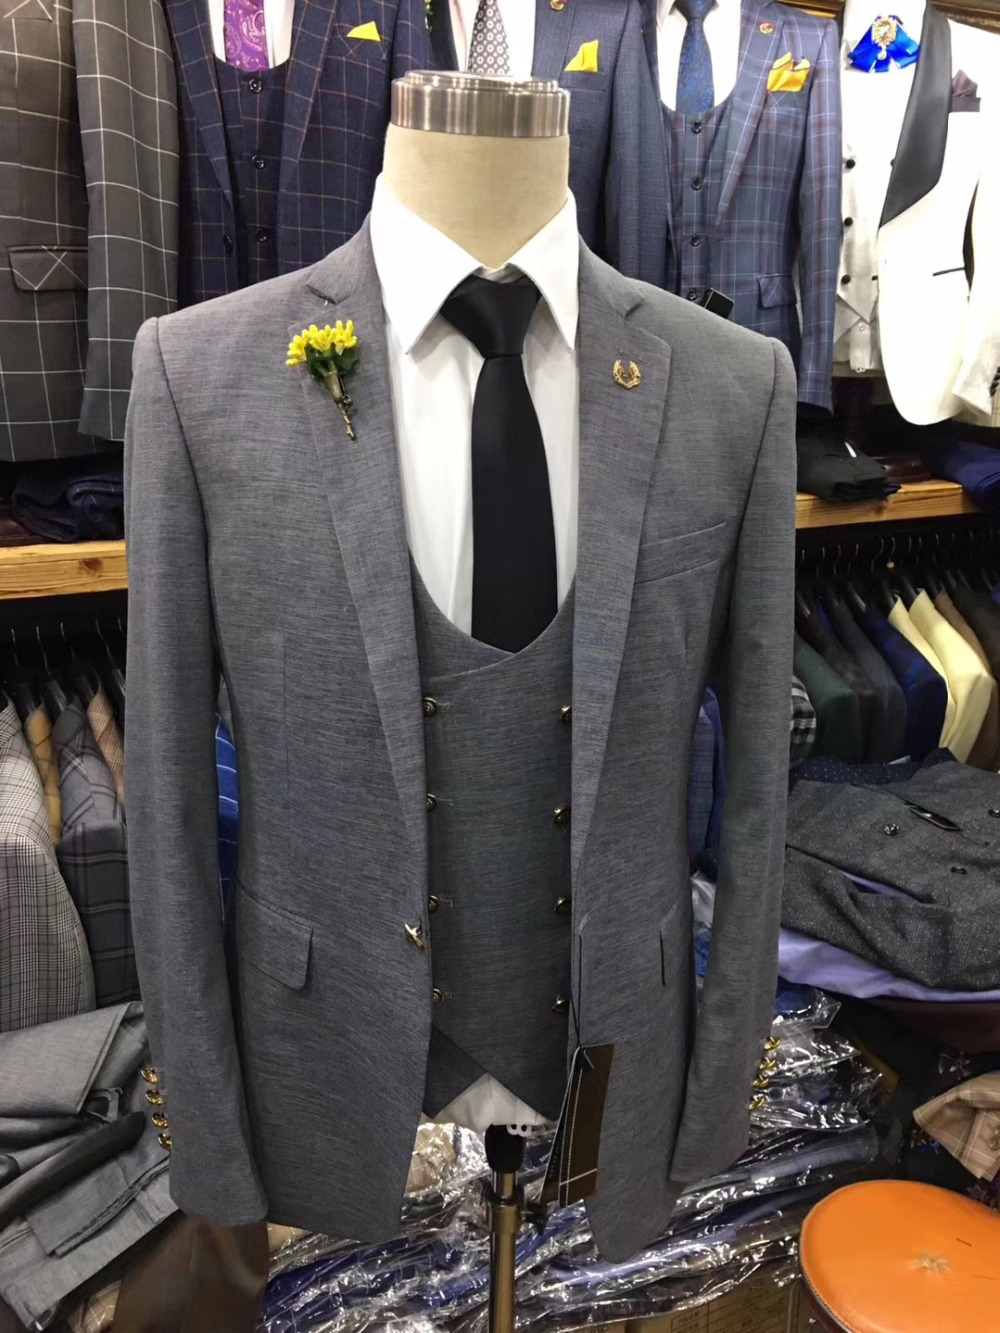 Black-Slim-Fit-Tuxedos-Groom-Wedding-Suits-For-Men-New-Design-Fashion-Formal-Party-Prom-Male